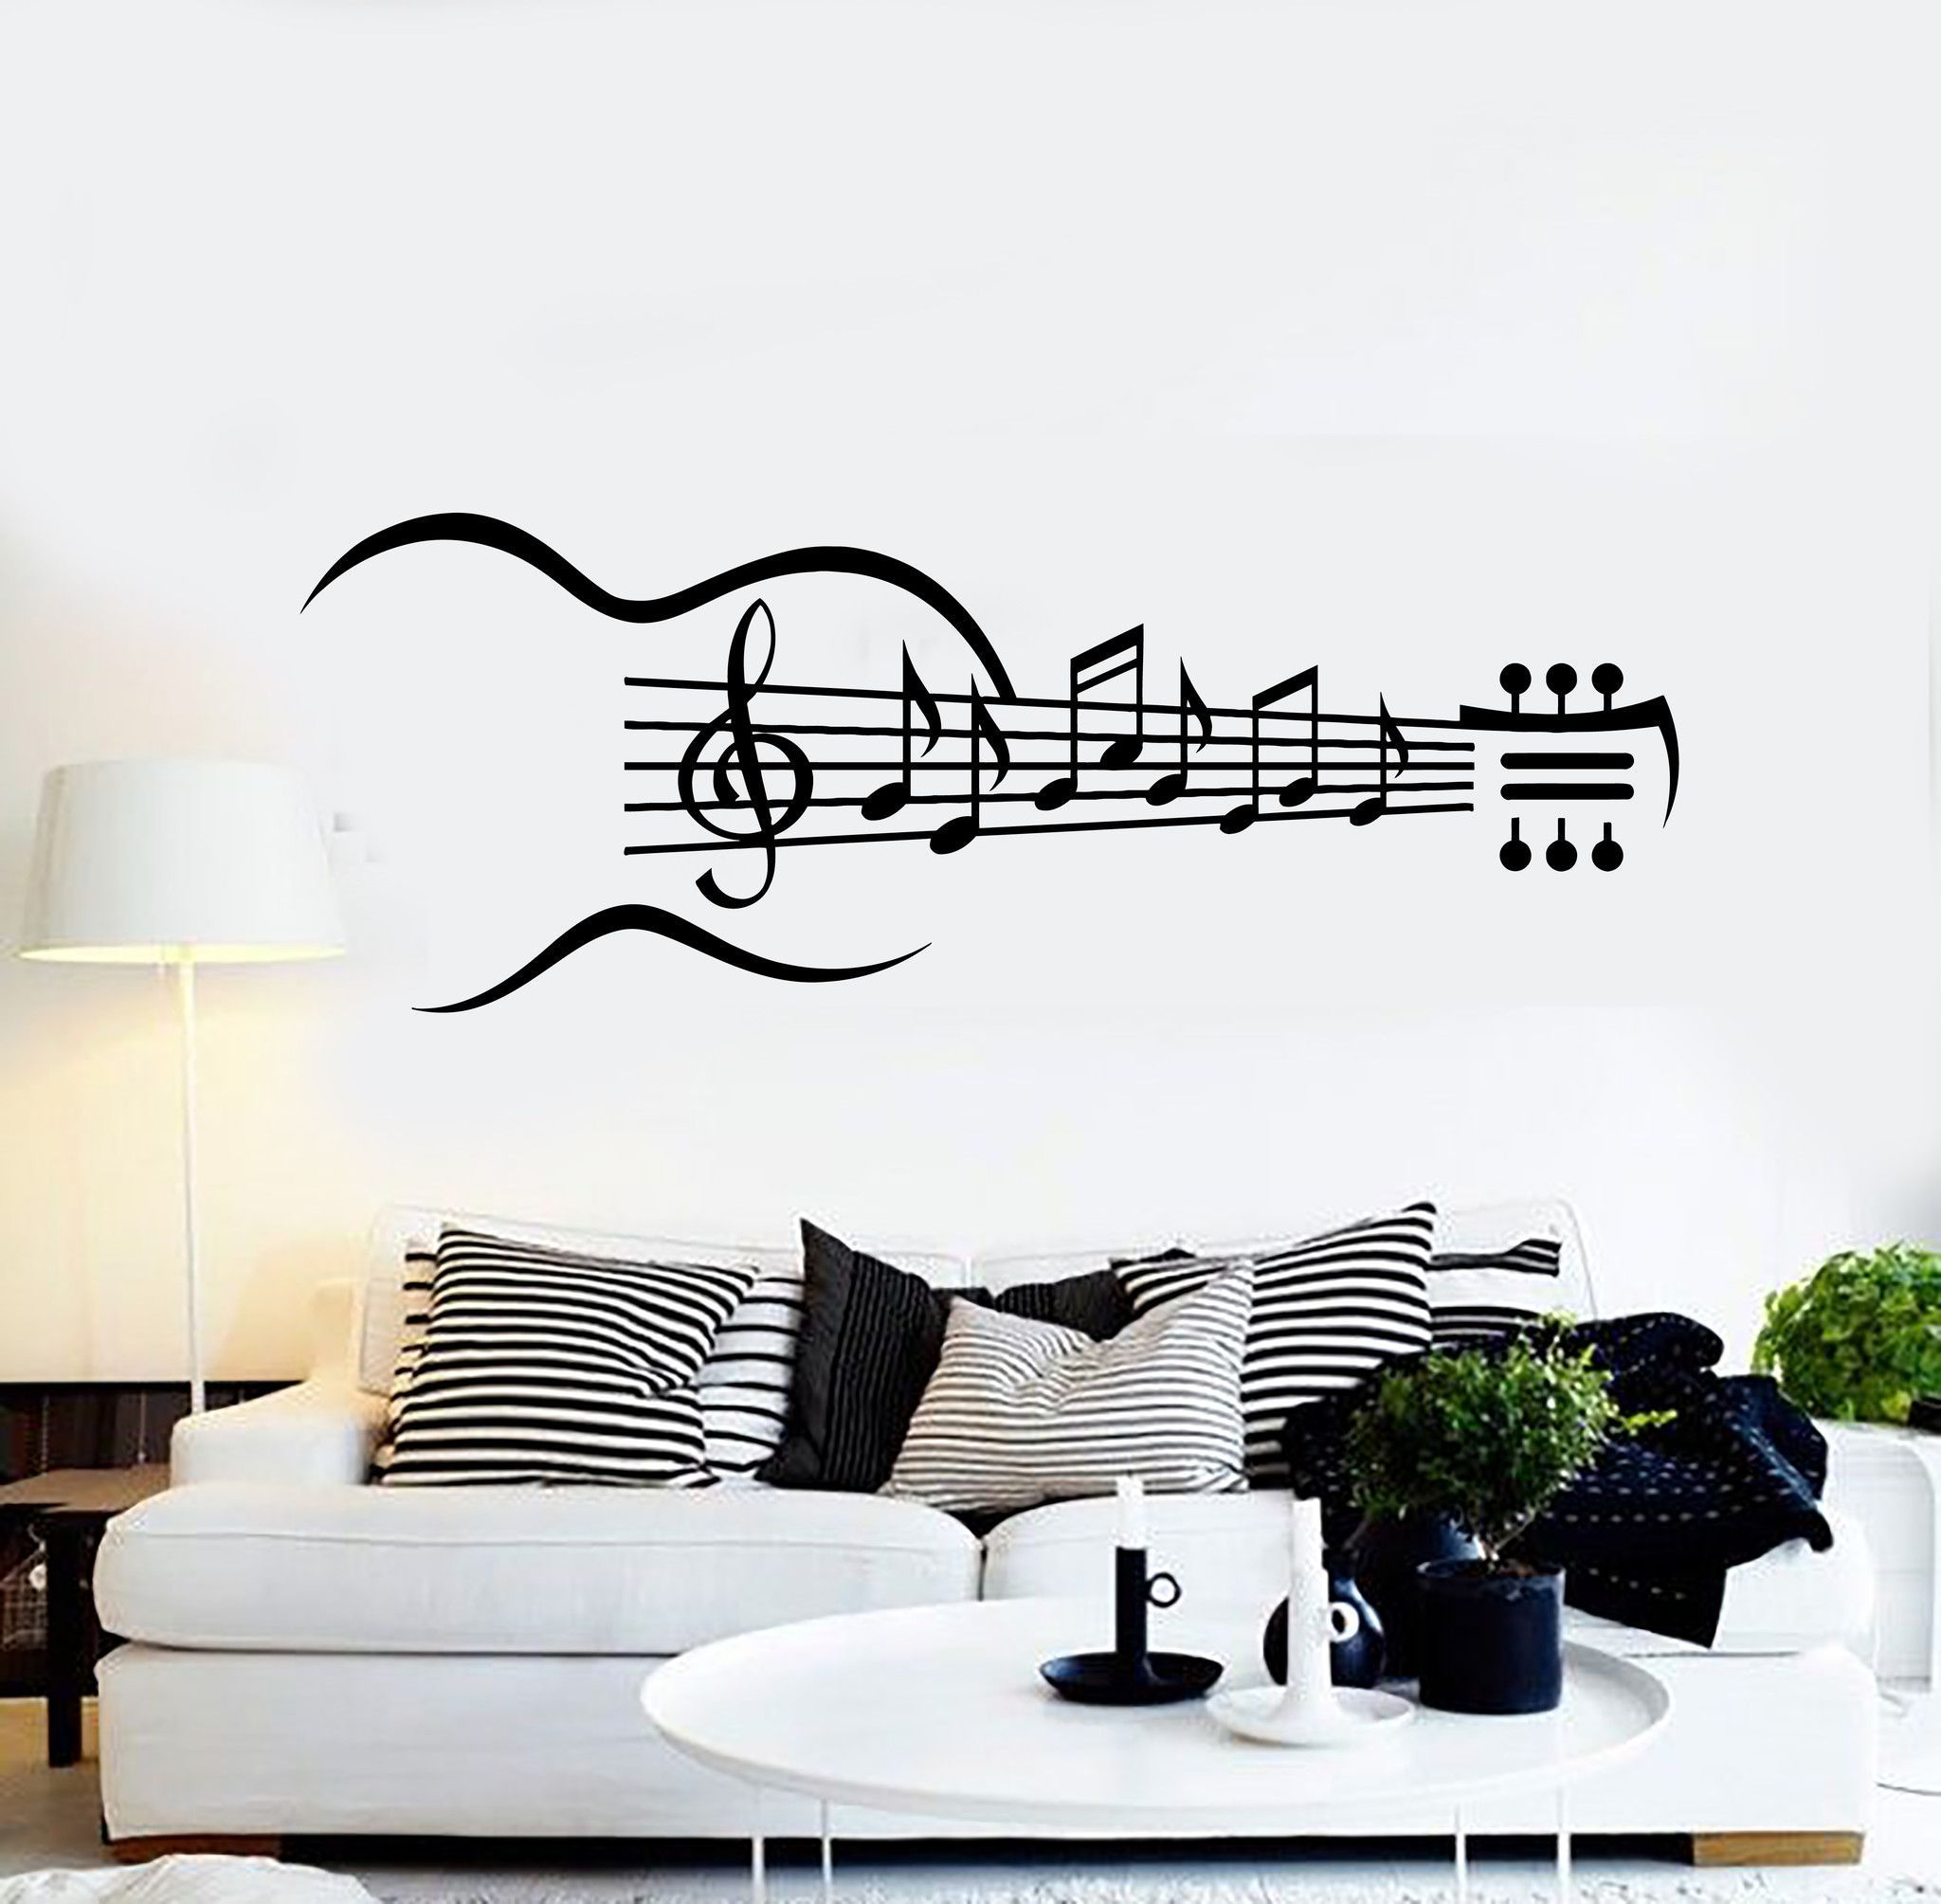 Time To Feel The Music In Every Inch Of Your House If You Live